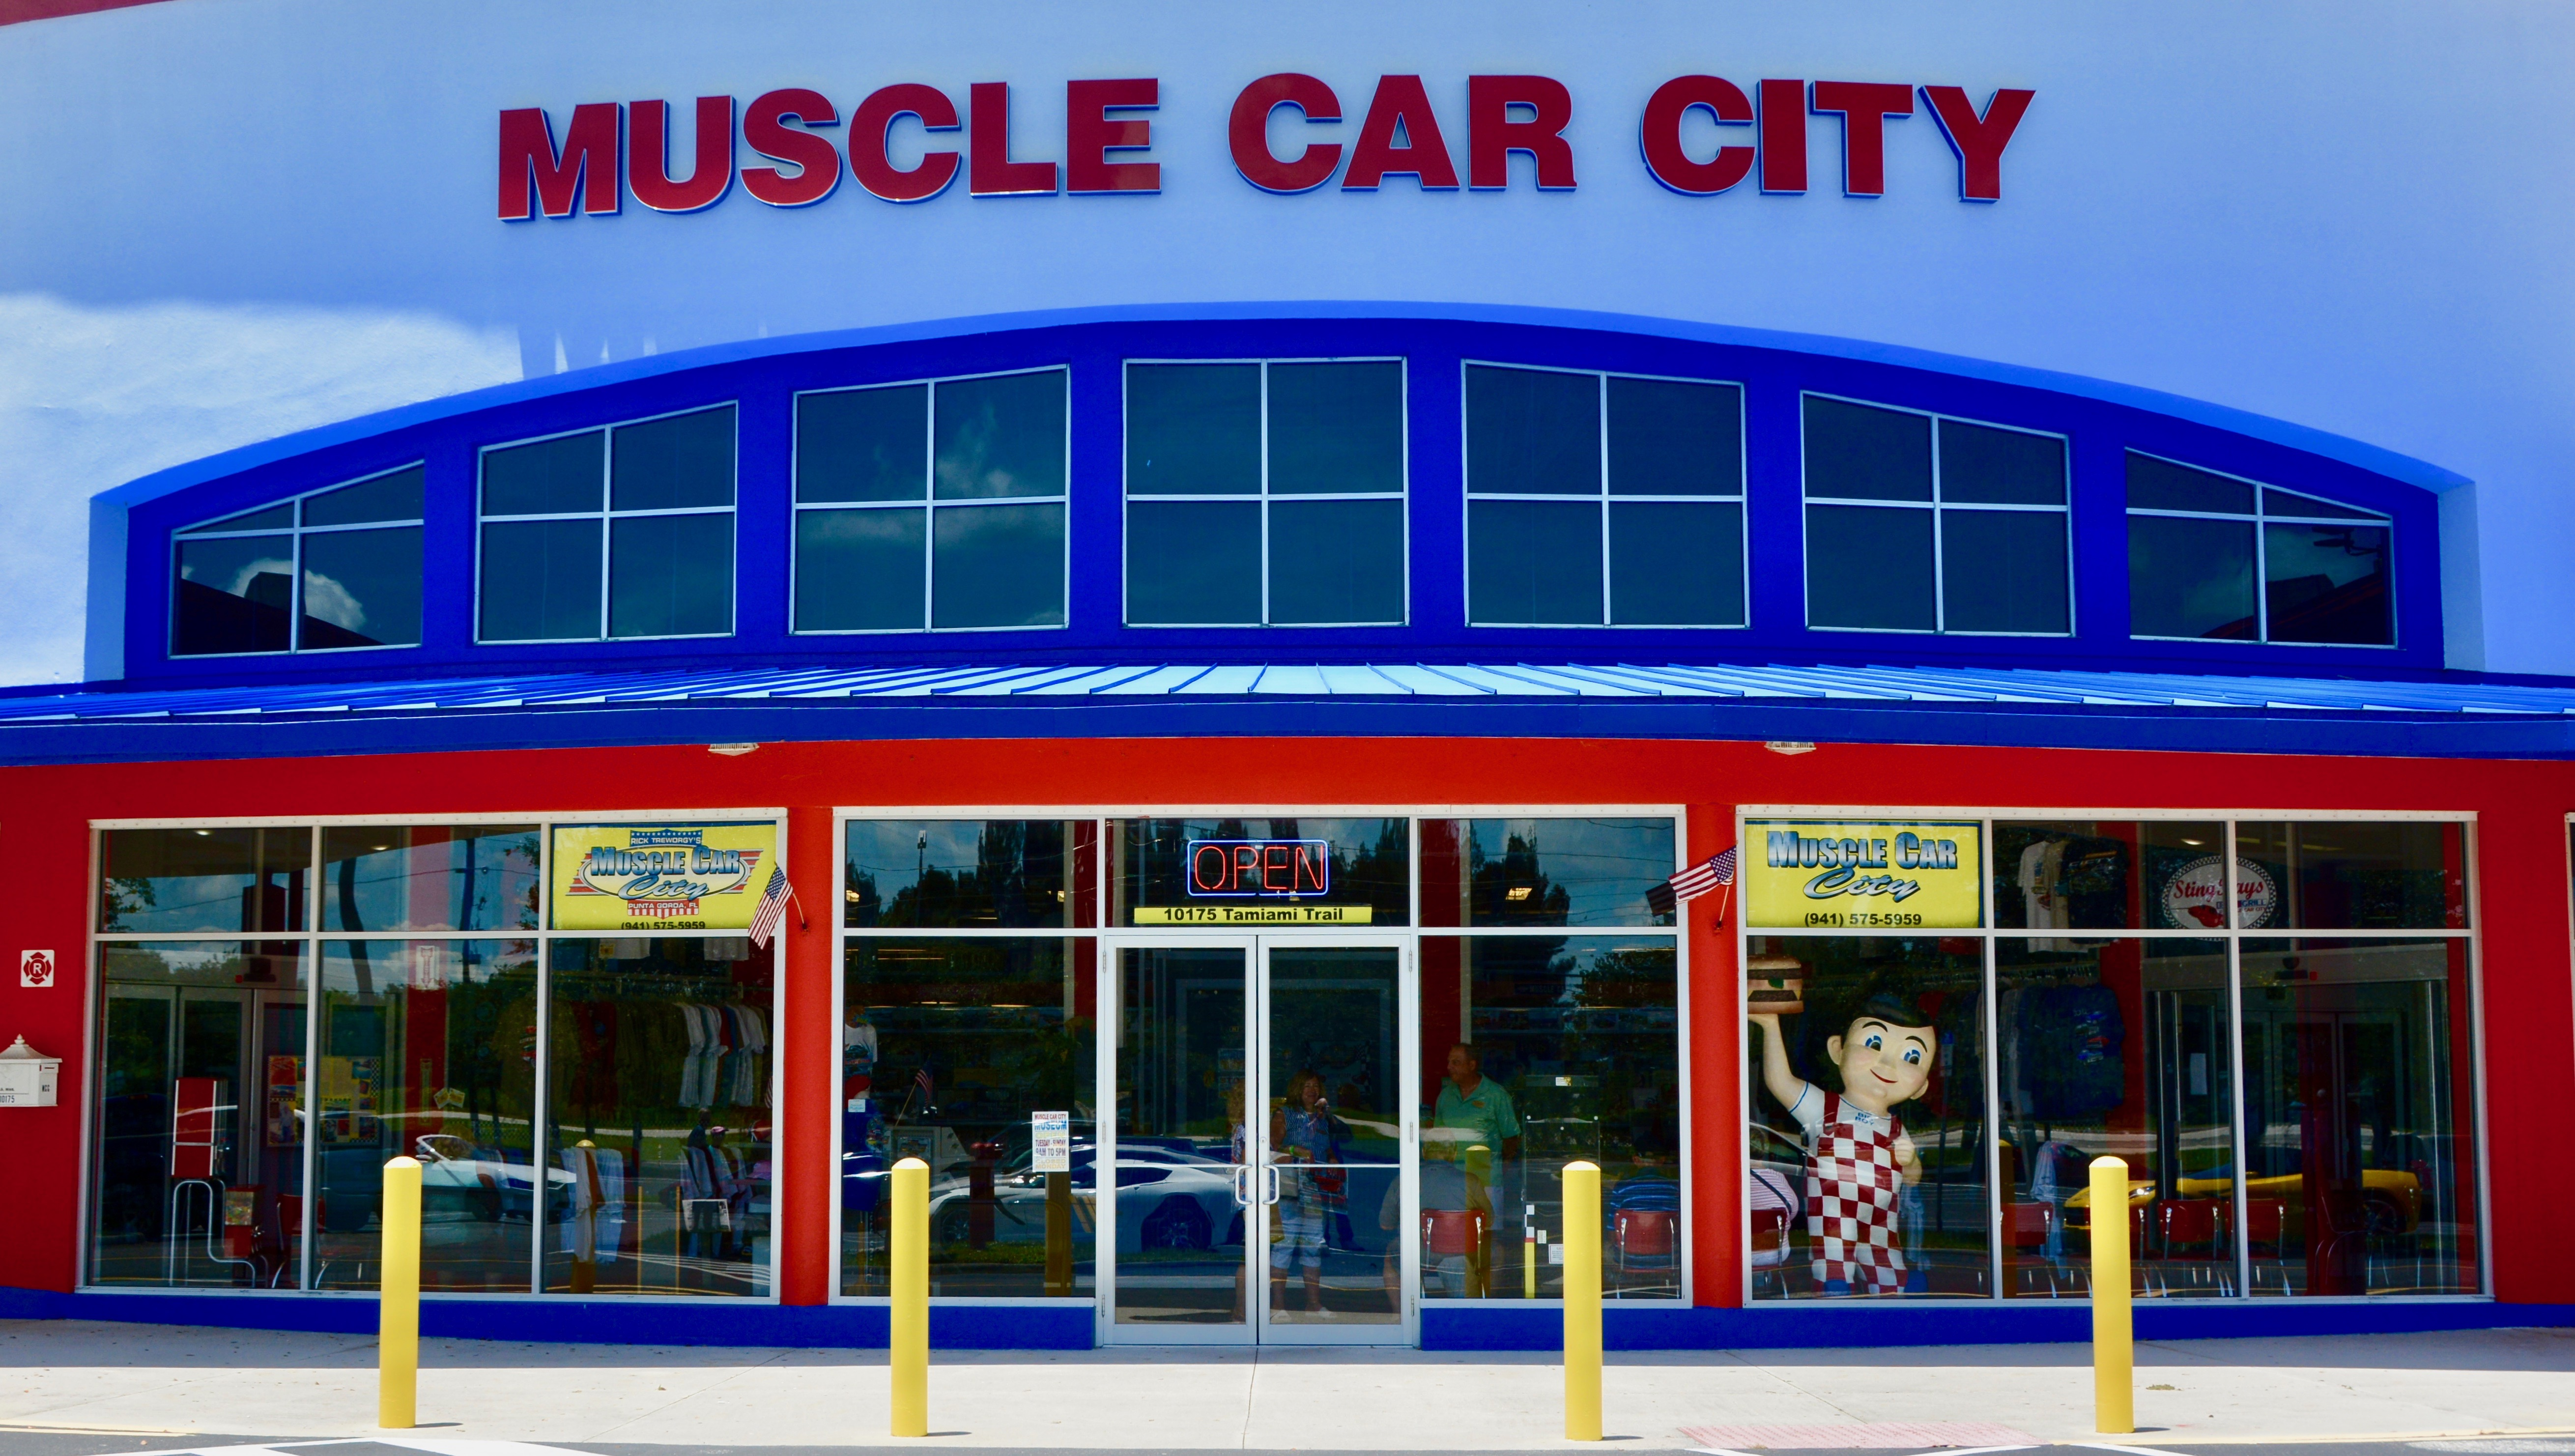 Muscle Car City, Muscle Car City provides a festival of GM power, ClassicCars.com Journal